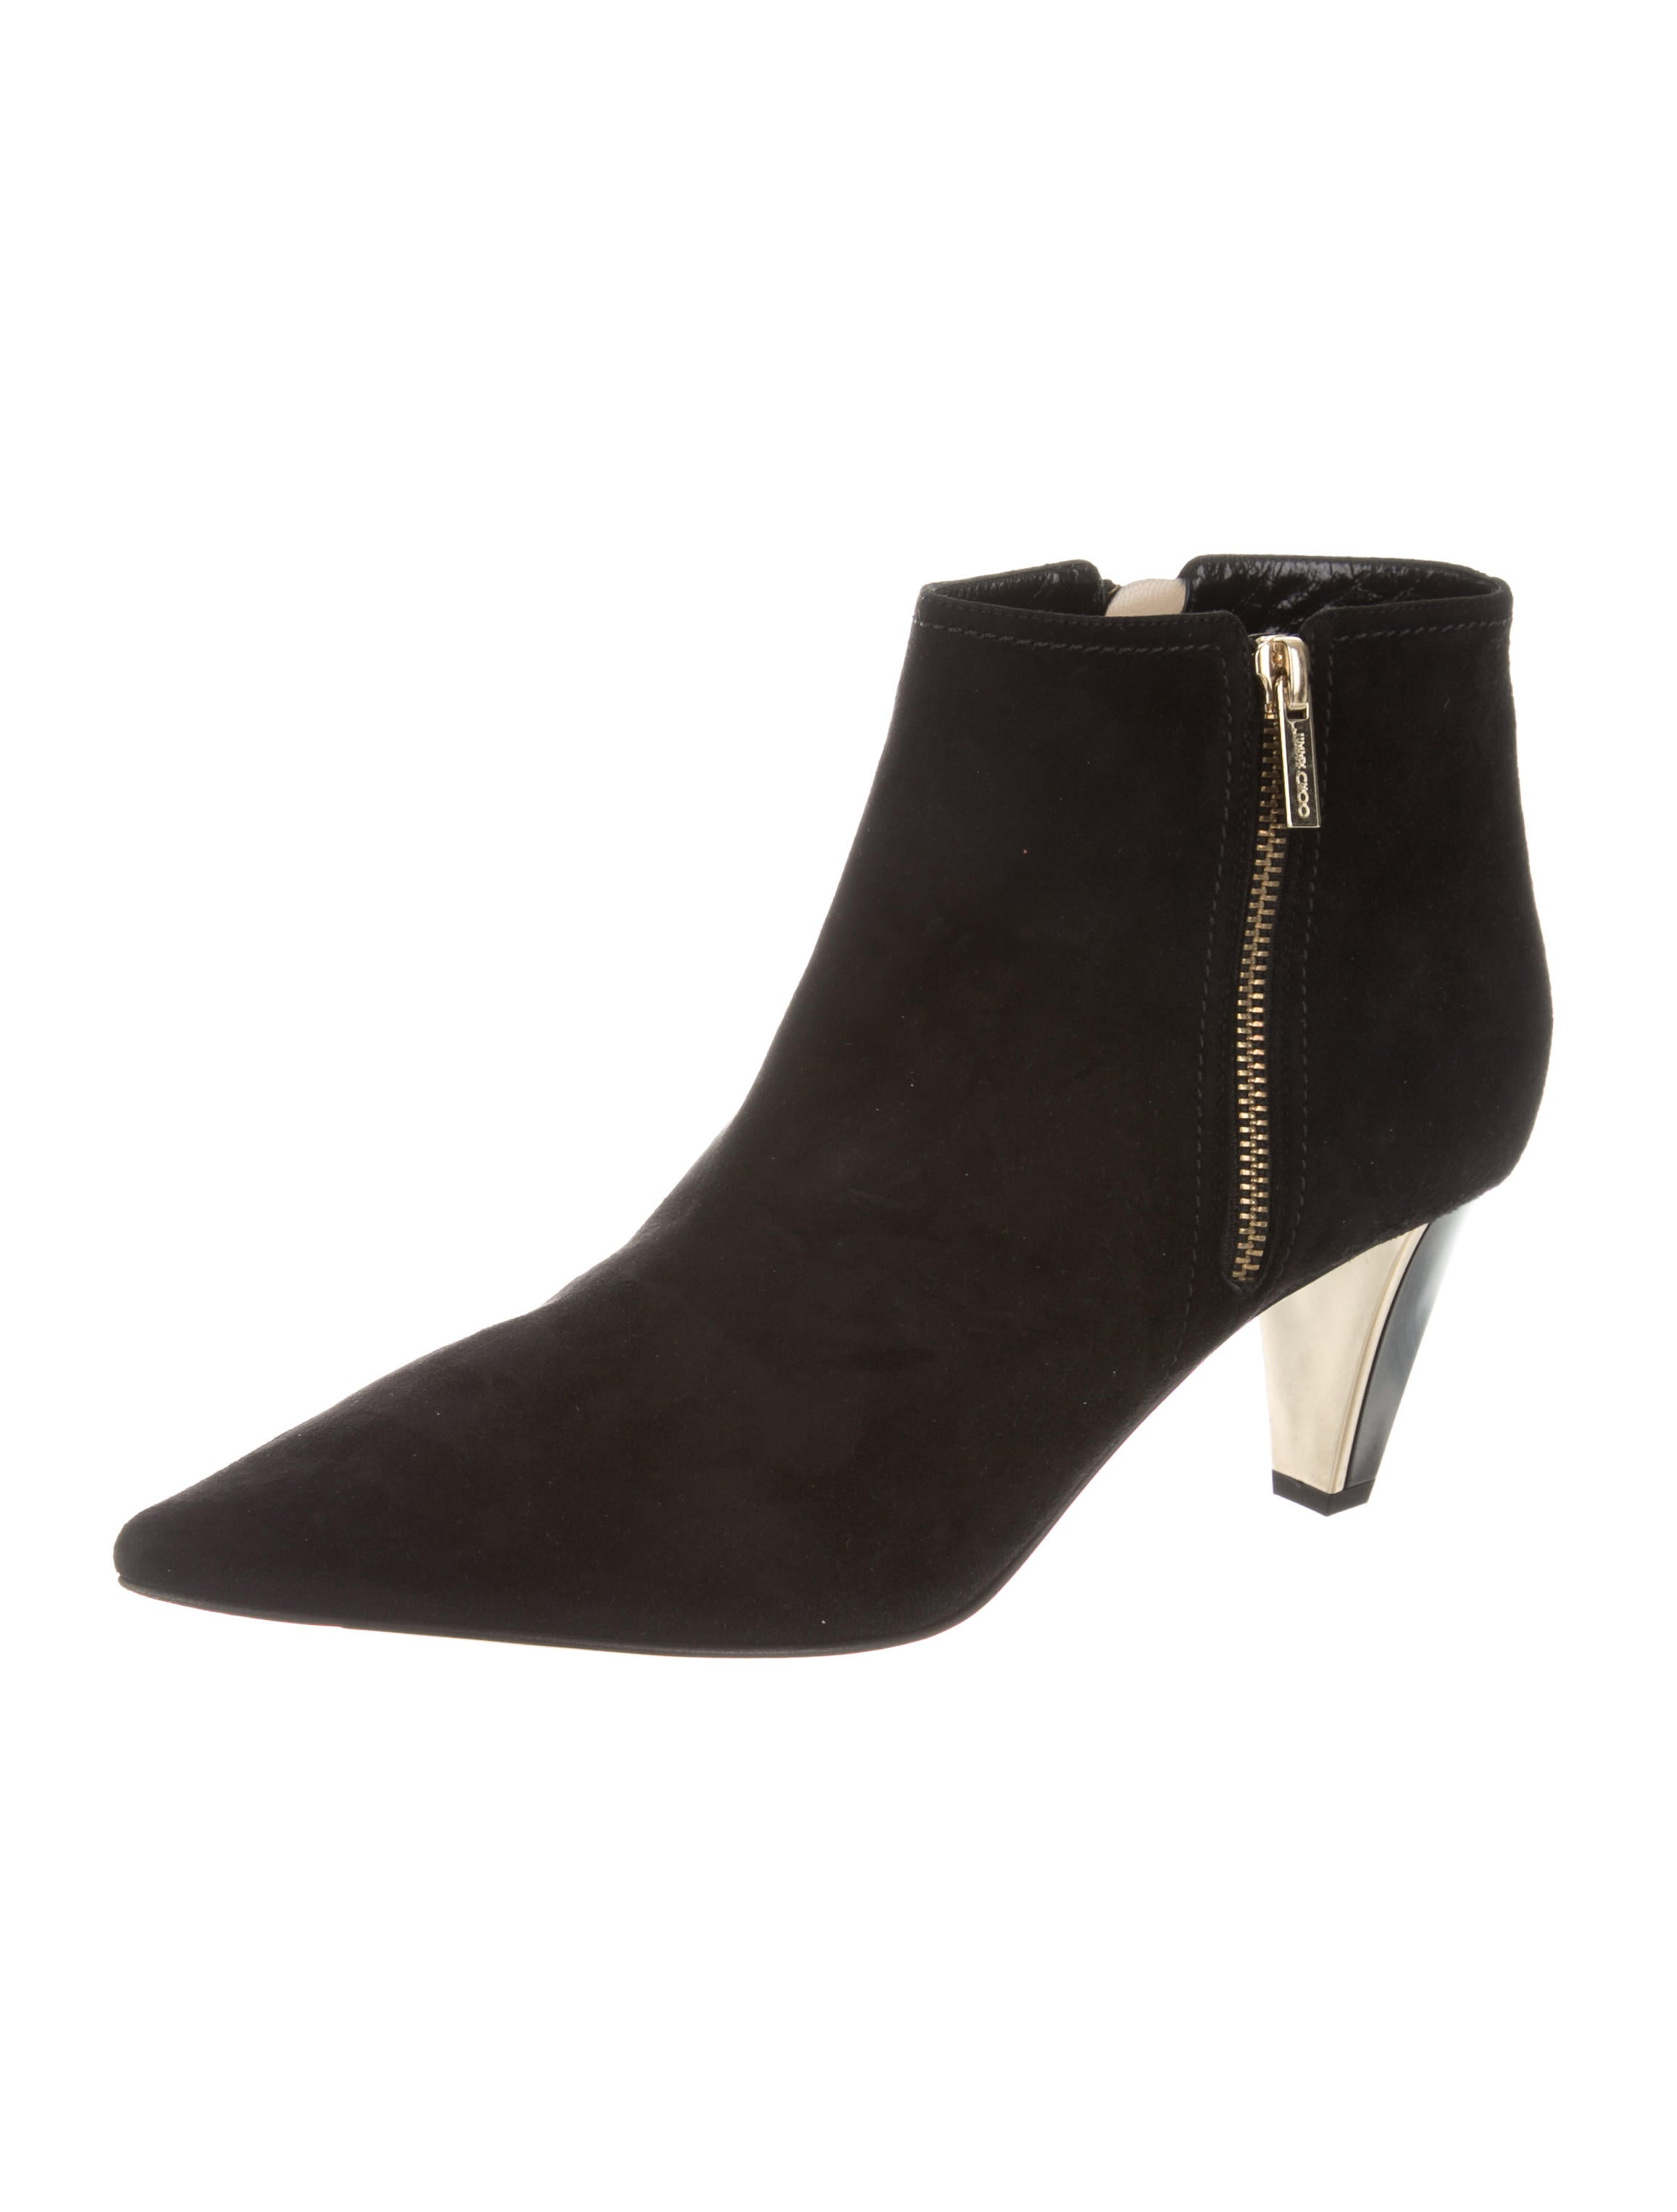 best wholesale cheap price outlet geniue stockist Jimmy Choo Lowry Ankle Boots w/ Tags buy cheap best wholesale zz1TXiBD